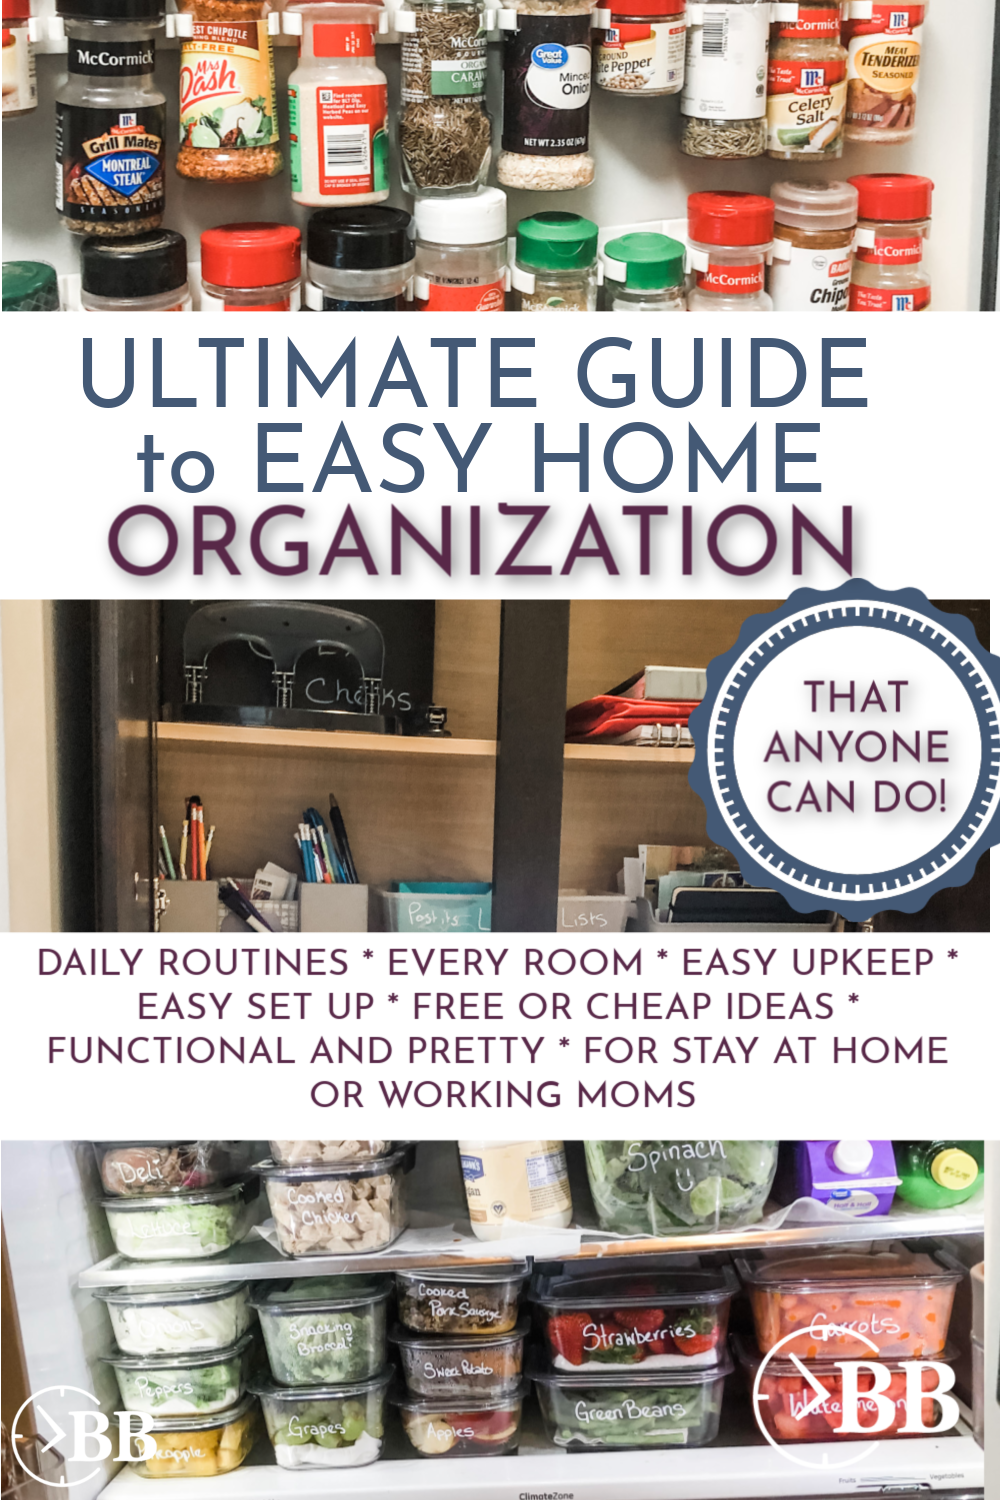 Home organization ideas that actually work. Whether you're looking to declutter the living room, bedroom, bathroom, kitchen, closet, office or laundry room this post has the hacks and the inspiration you need to get it done. These DIY ideas work especially well when you are on a budget and will give you tips and solutions for every area of your home.